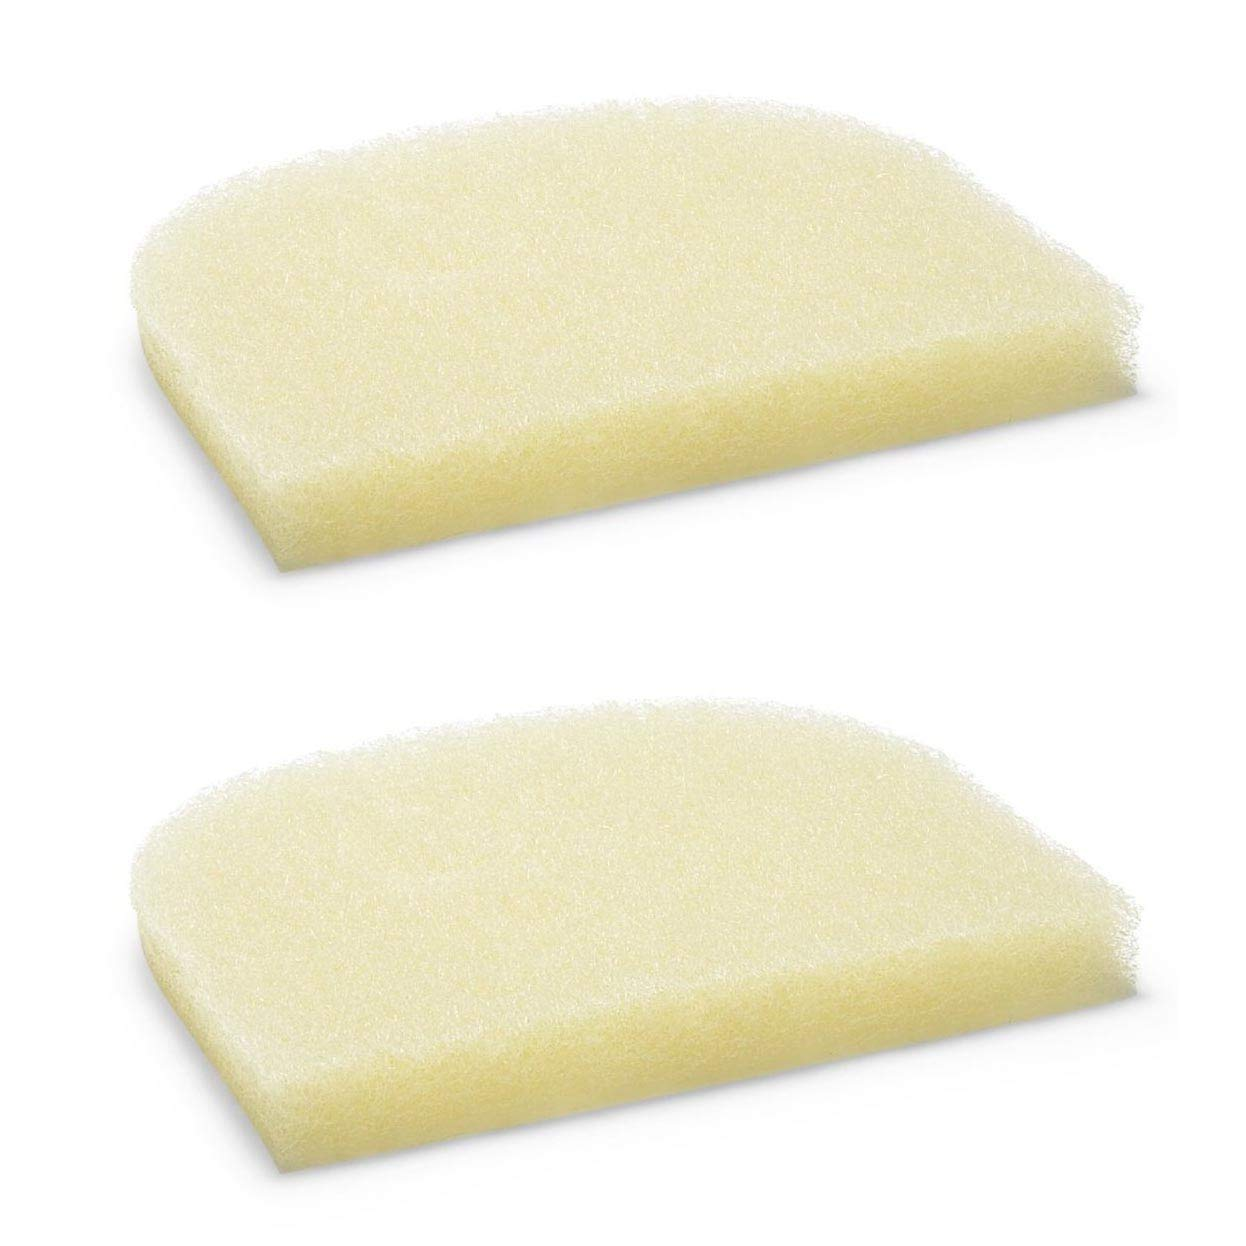 Aquascape Signature Series Skimmer 6.0 and 8.0 Filter Mat Replacement (2 Pack)